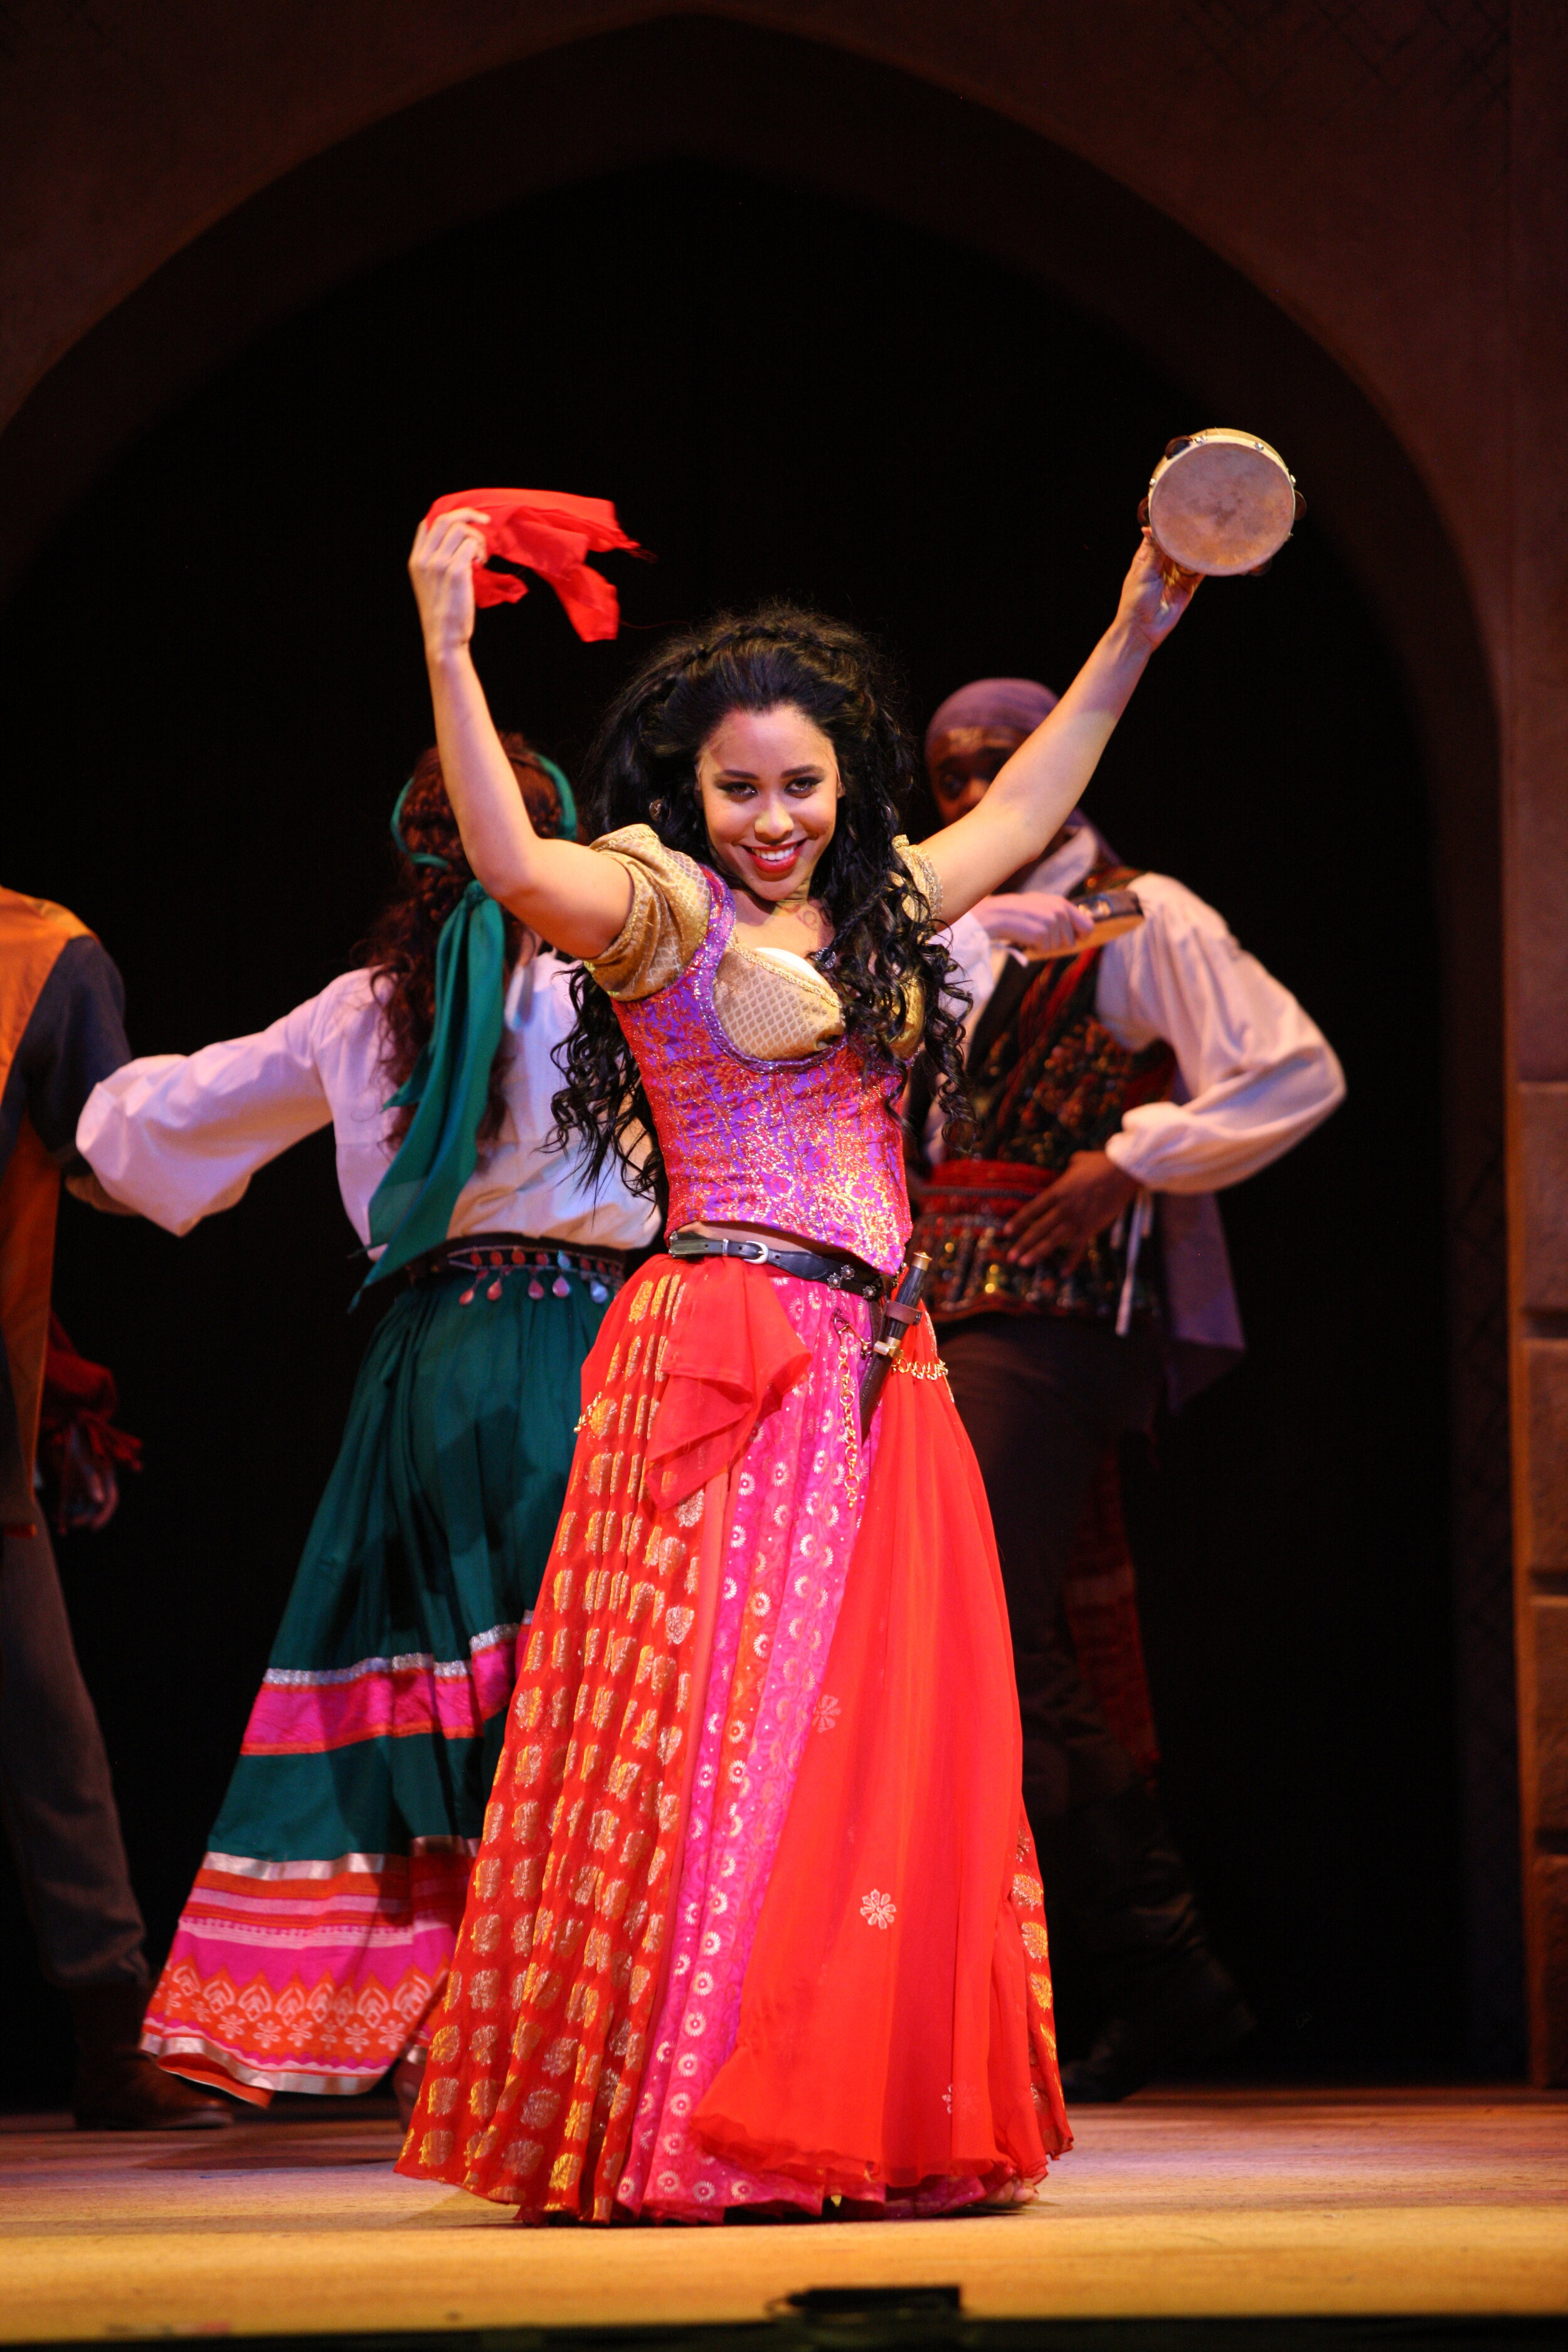 Esmerelda's Dance Skirt(Dyework)- The Hunchback of Notre Dame -Music Theatre Wichita 2017  Costume Design by George T Mitchell. All other designs by the summer staff of MTW. Photos Courtesy of Christopher Clark and Jerry Fritchman.